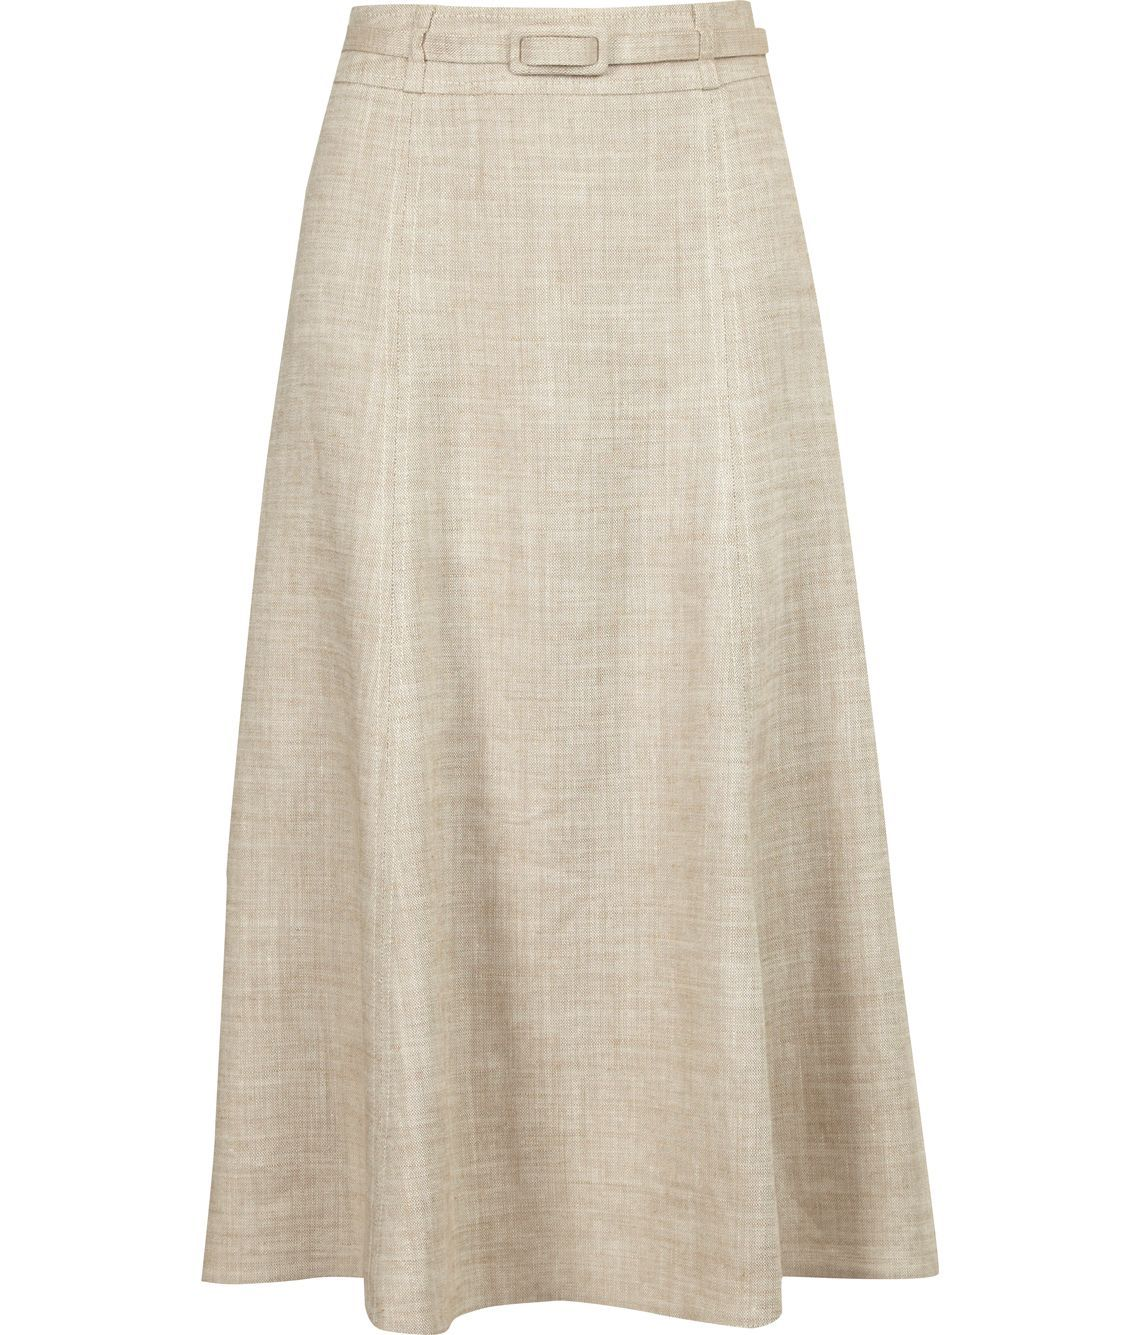 Women's Natural Linen Skirt, Cream - length: below the knee; pattern: plain; fit: loose/voluminous; waist detail: fitted waist, belted waist/tie at waist/drawstring; waist: high rise; hip detail: fitted at hip, structured pleats at hip, soft pleats at hip/draping at hip/flared at hip; predominant colour: ivory; occasions: casual, work, occasion; style: a-line; fibres: linen - mix; material texture: jersey; pattern type: fabric; pattern size: standard; texture group: jersey - stretchy/drapey